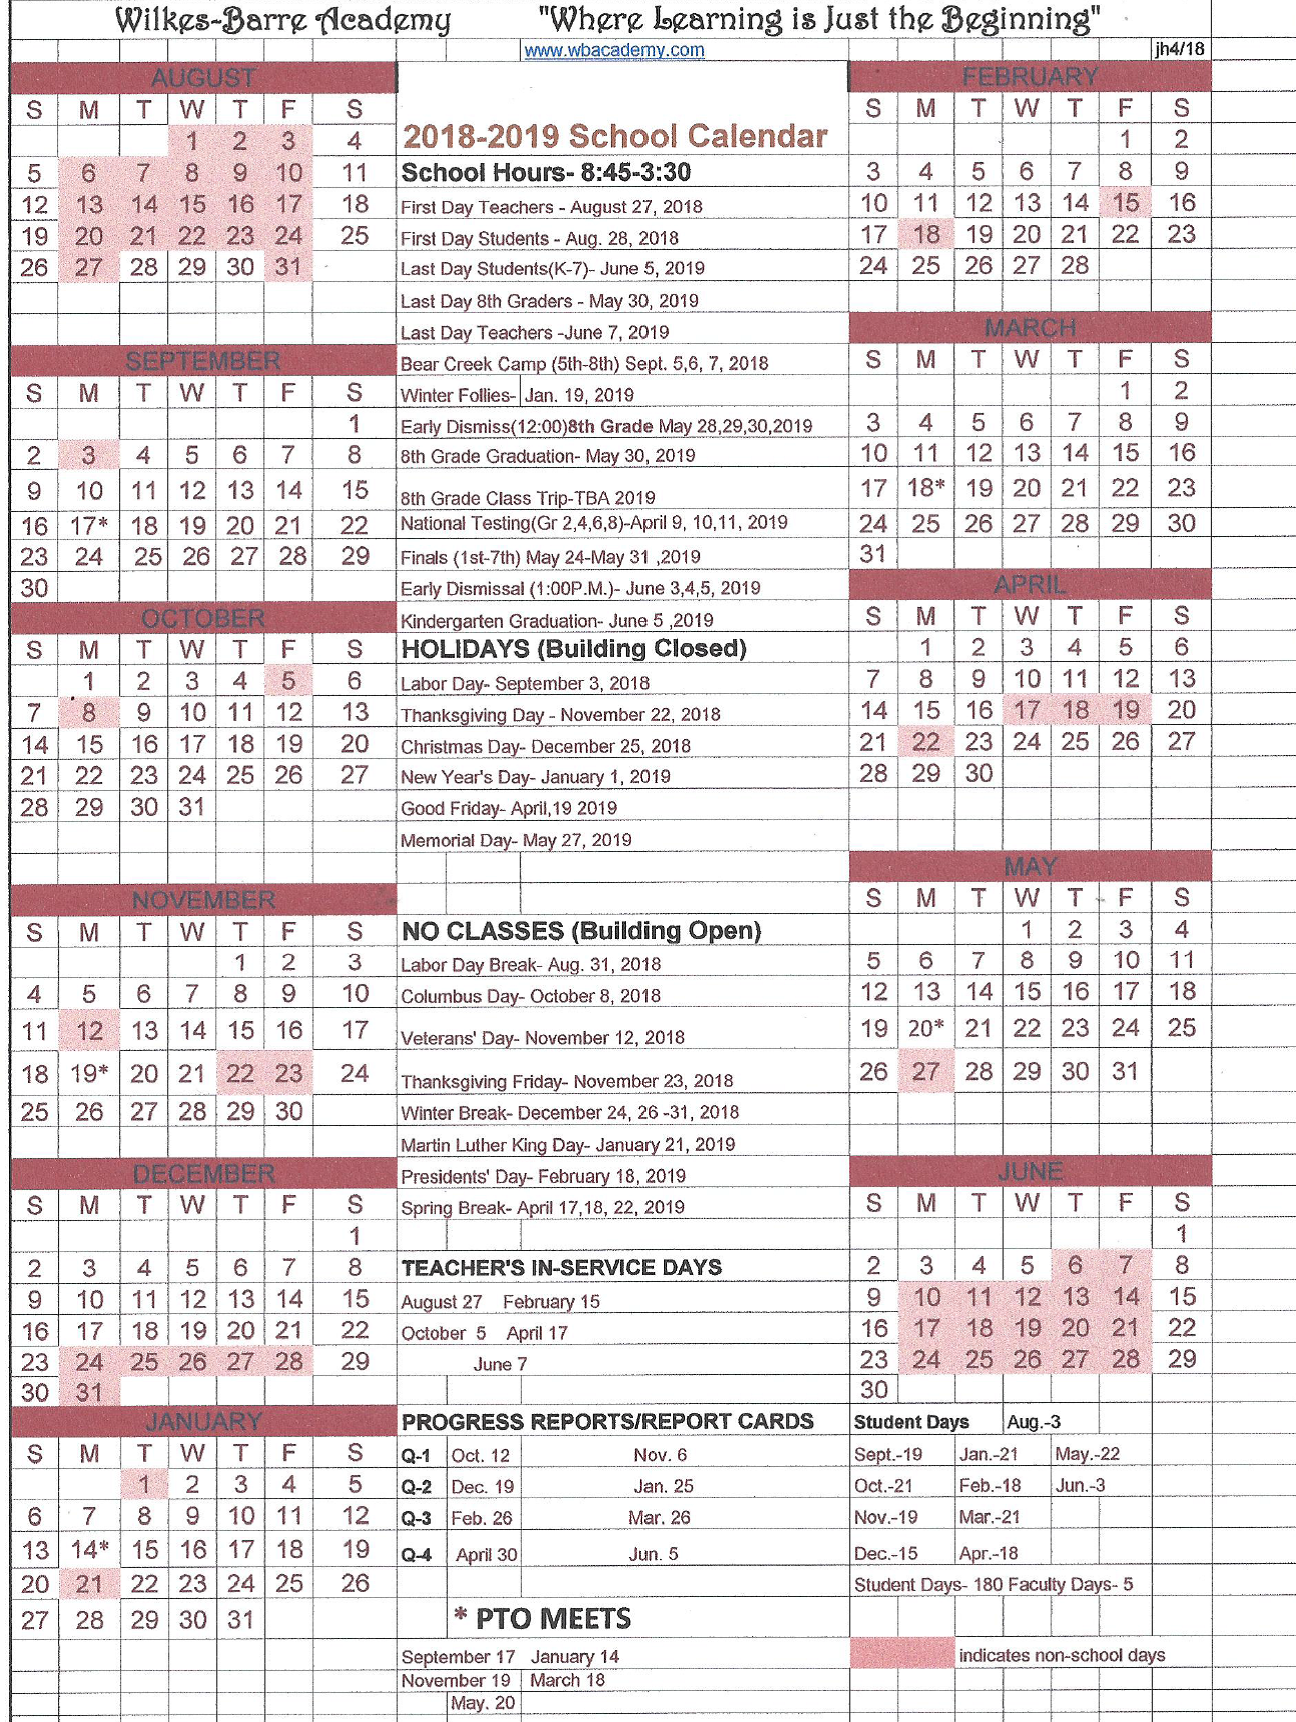 Xlsx Year Calendar : Wilkes barre academy yearly calendar